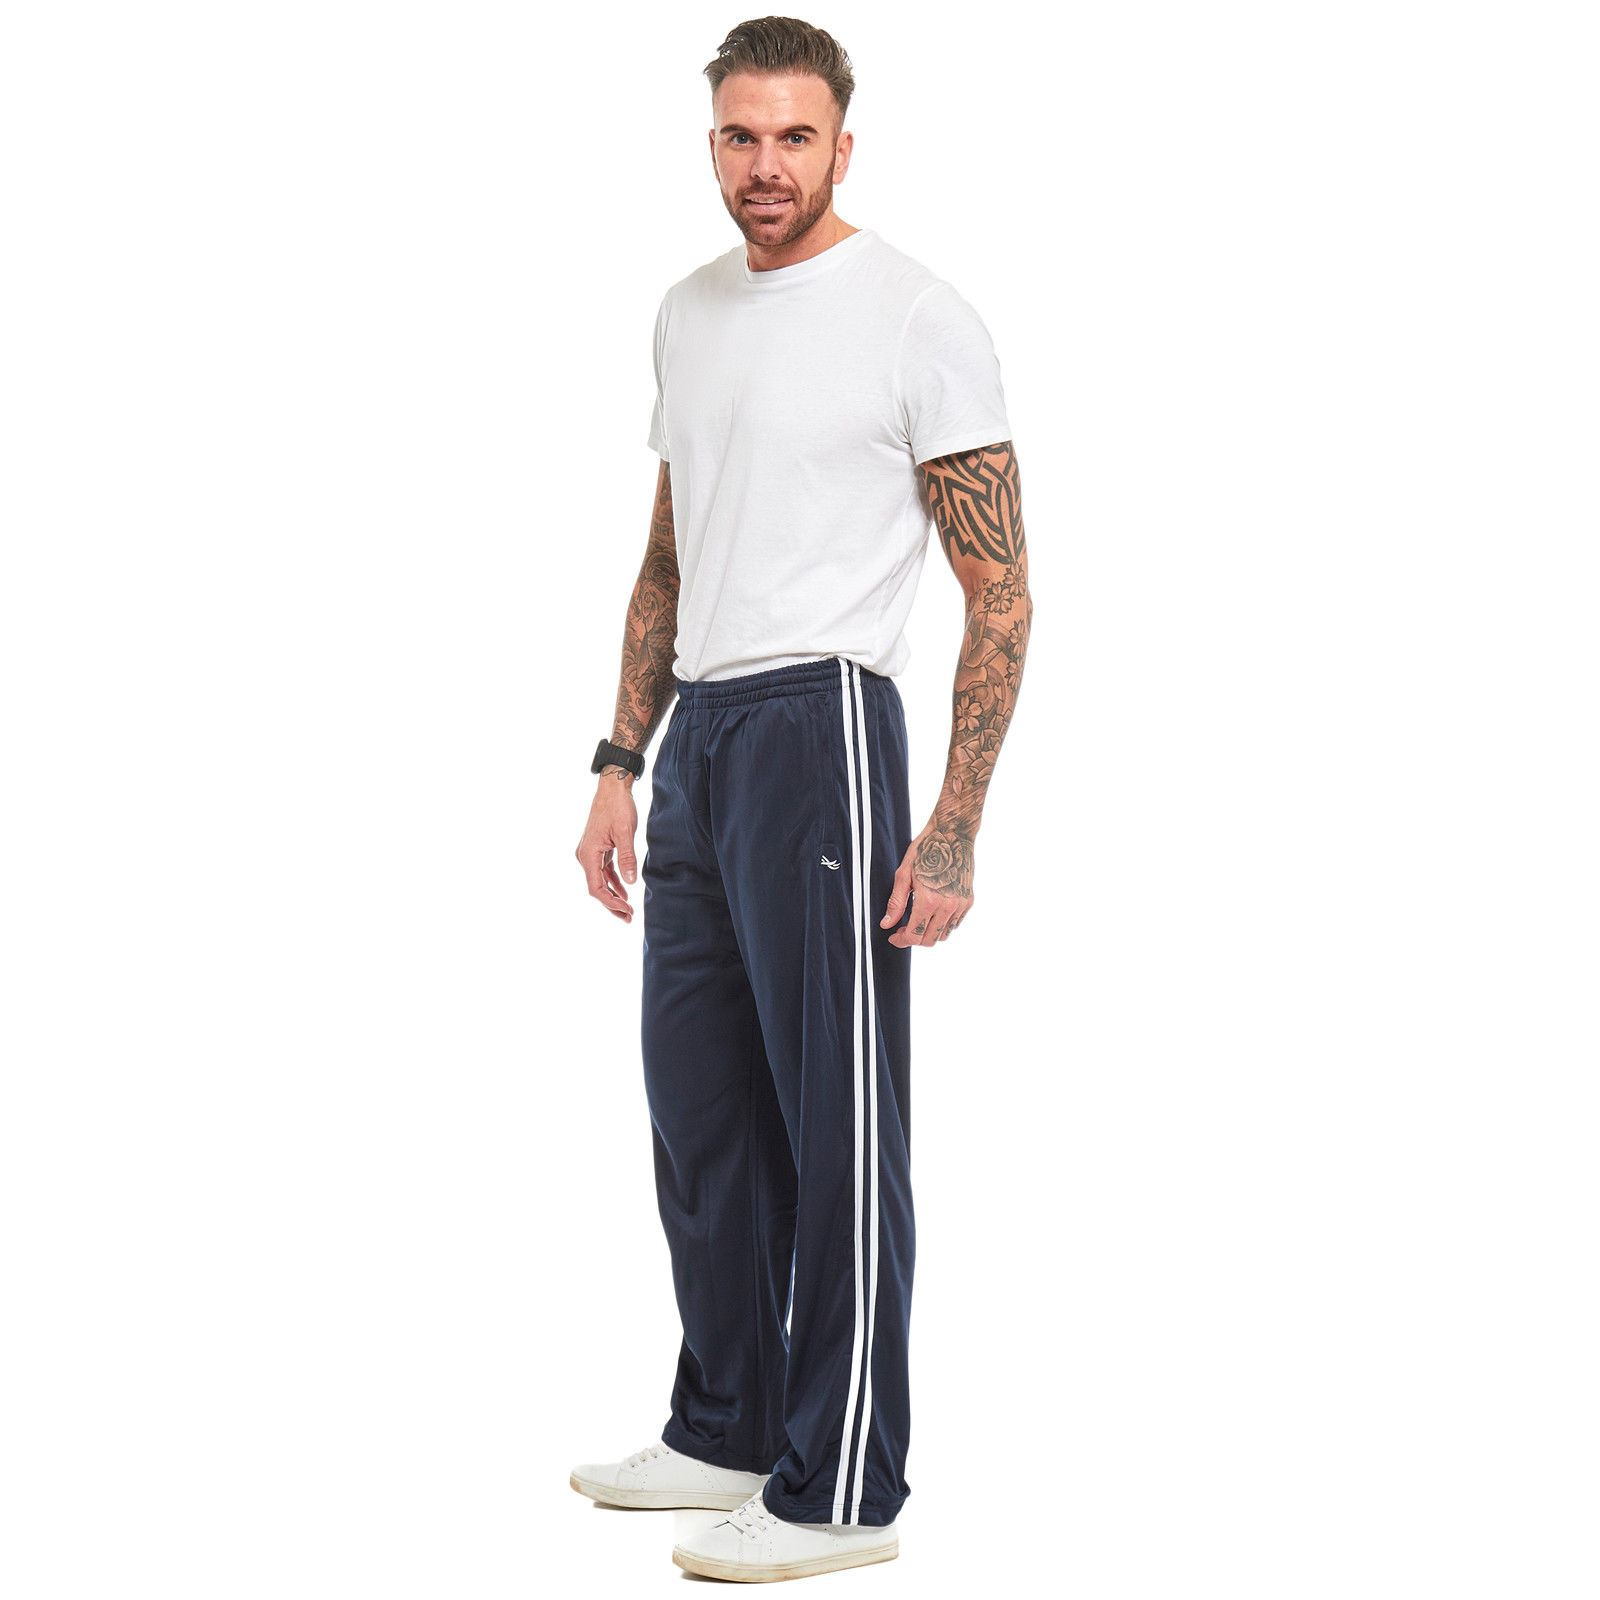 Mens-Tracksuit-Joggers-Jogging-Striped-Gym-Sports-Silky-Bottoms-Trousers-Pants thumbnail 13